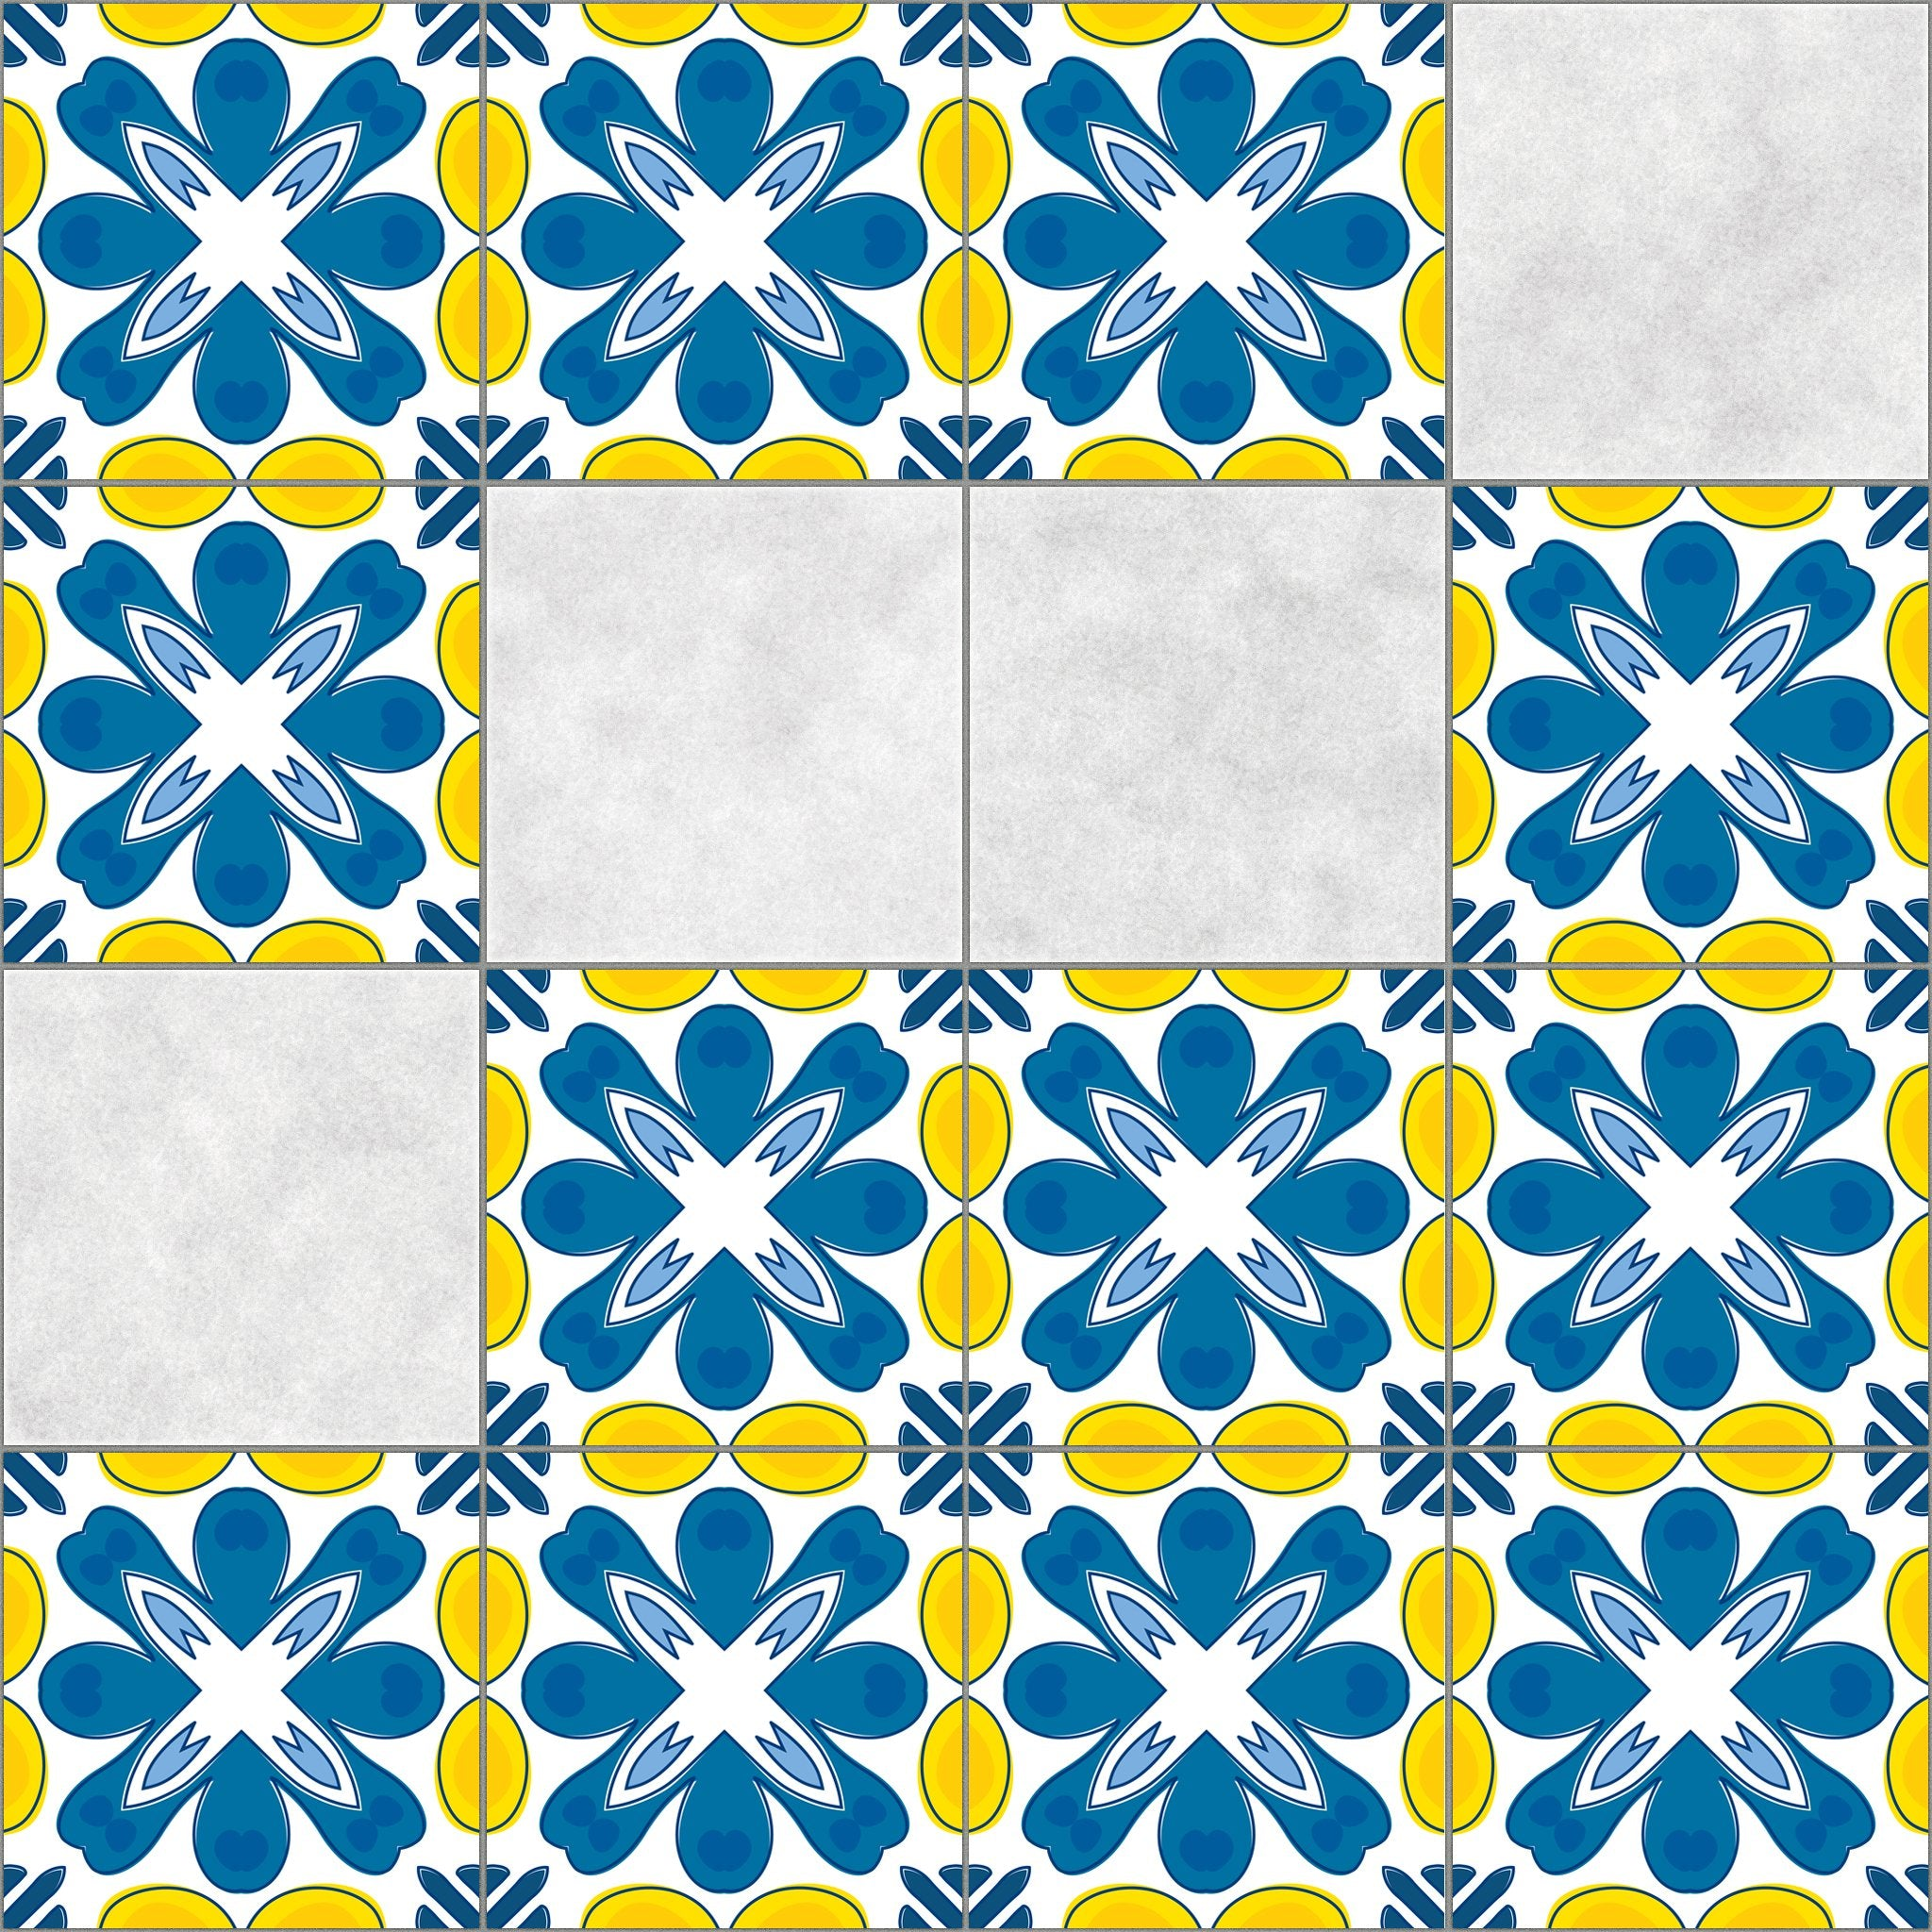 Tile stickers - KP070